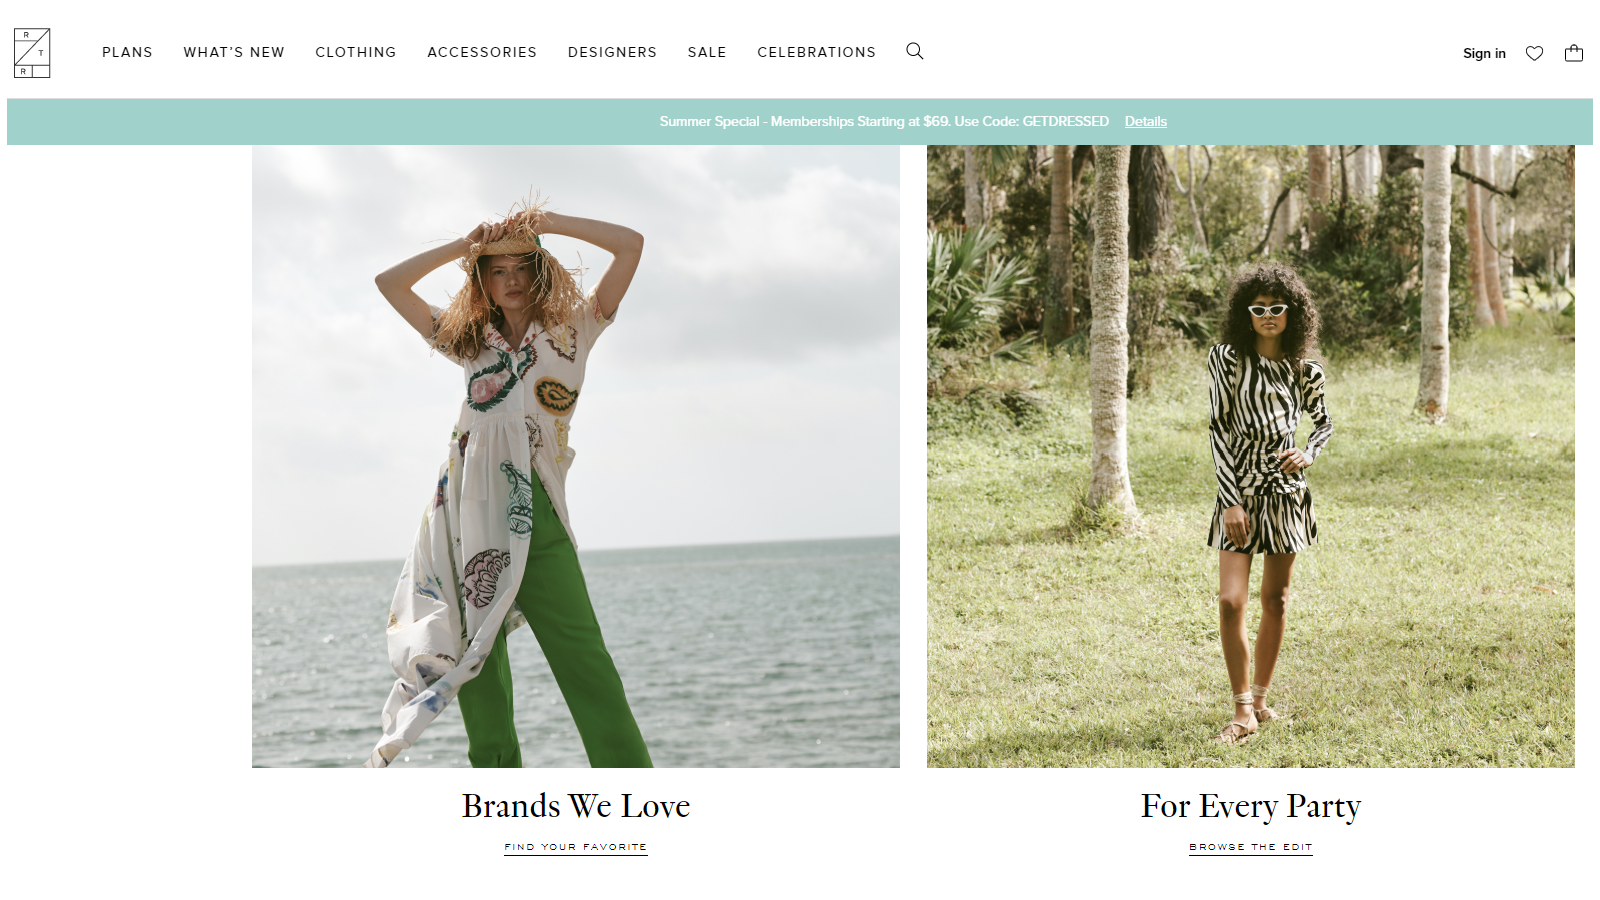 Rent the Runway rent designer clothes each month people wearing designer clothes outside in a beautiful photoshoot